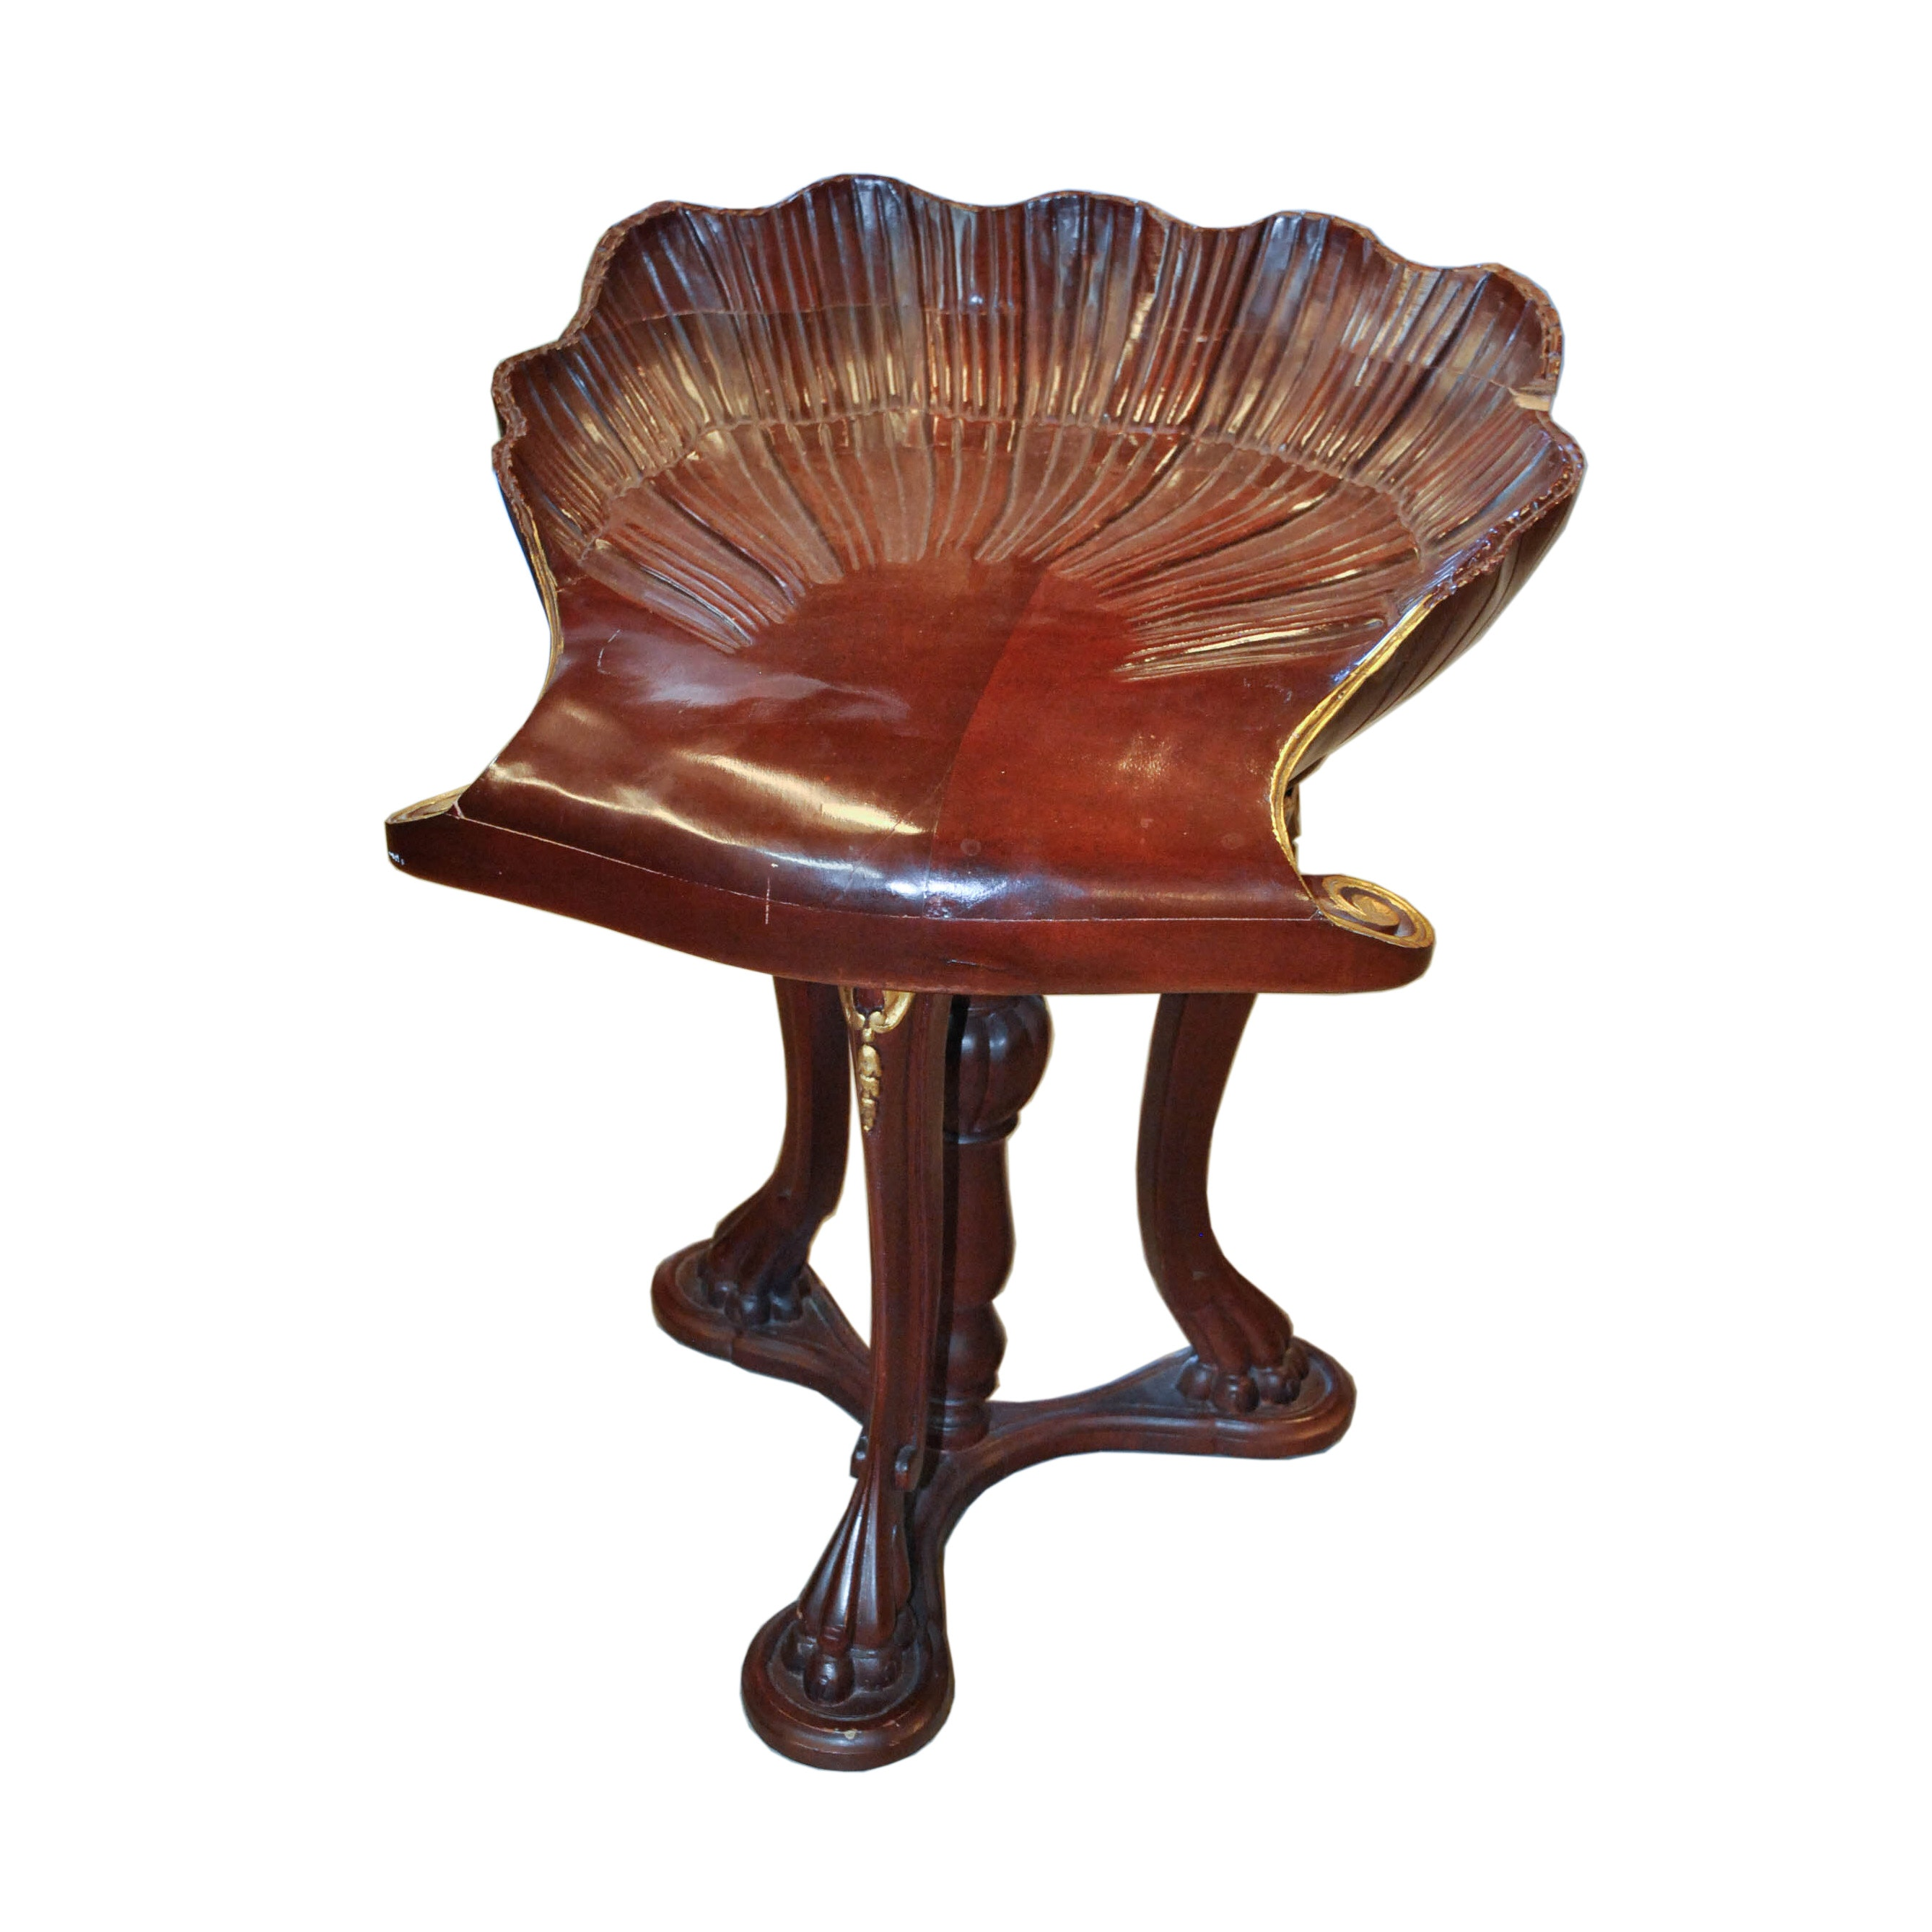 Vintage Empire Style Grotto Clamshell Chair ...